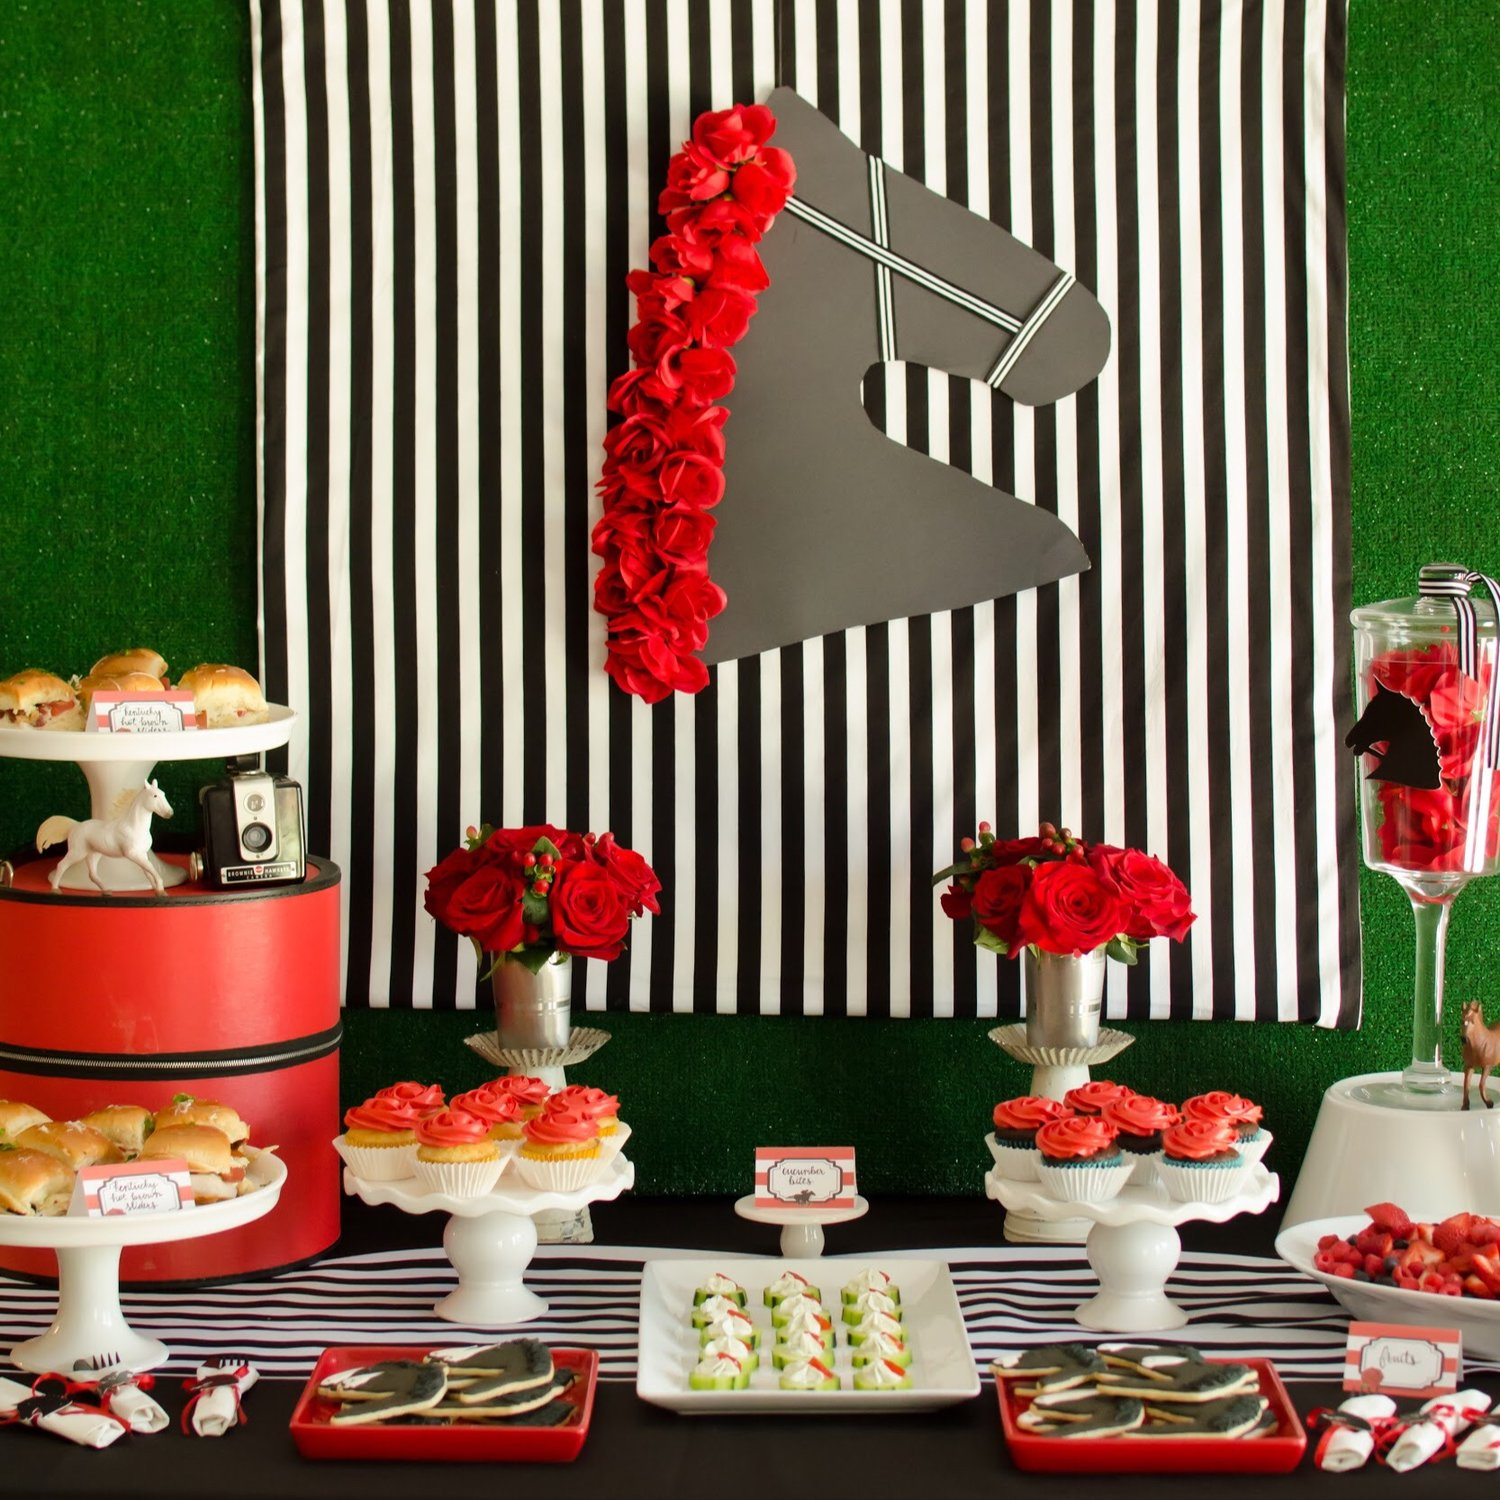 Red Rose Kentucky Derby Party Ideas Mint Event Design